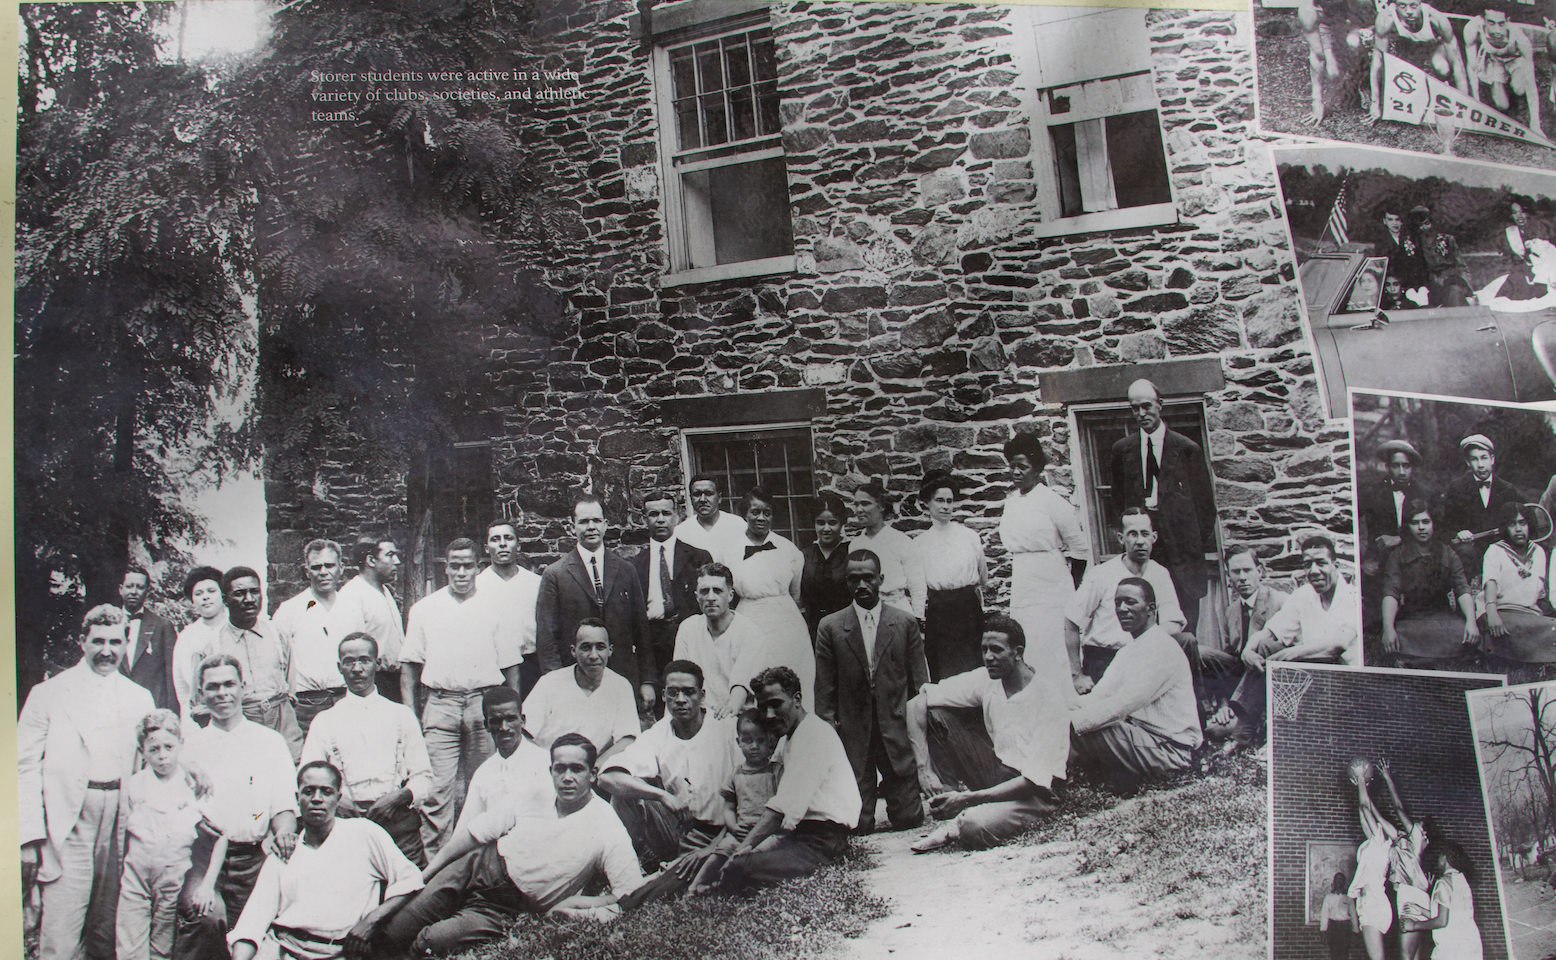 31. Storer College historical marker enlarged to see students.  (Photo by G. Maurice Ballard)